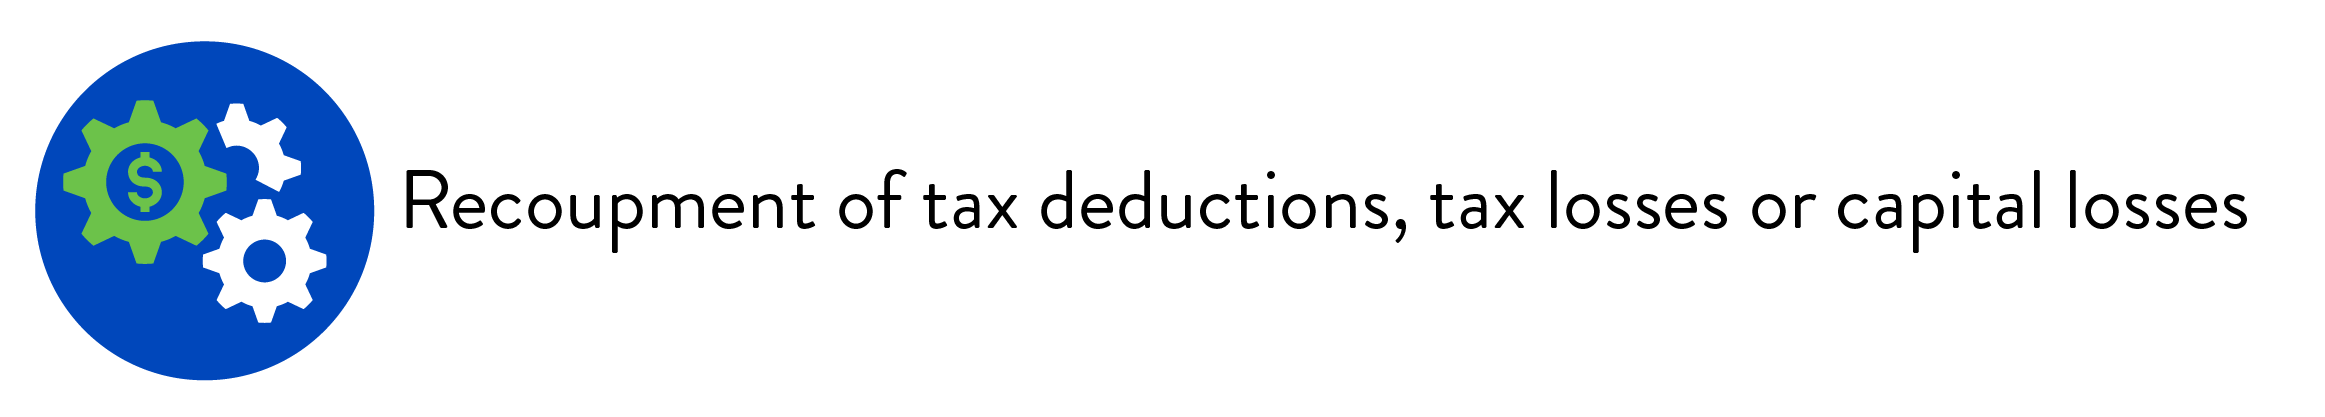 Recoupment of tax deductions, tax losses or capital losses